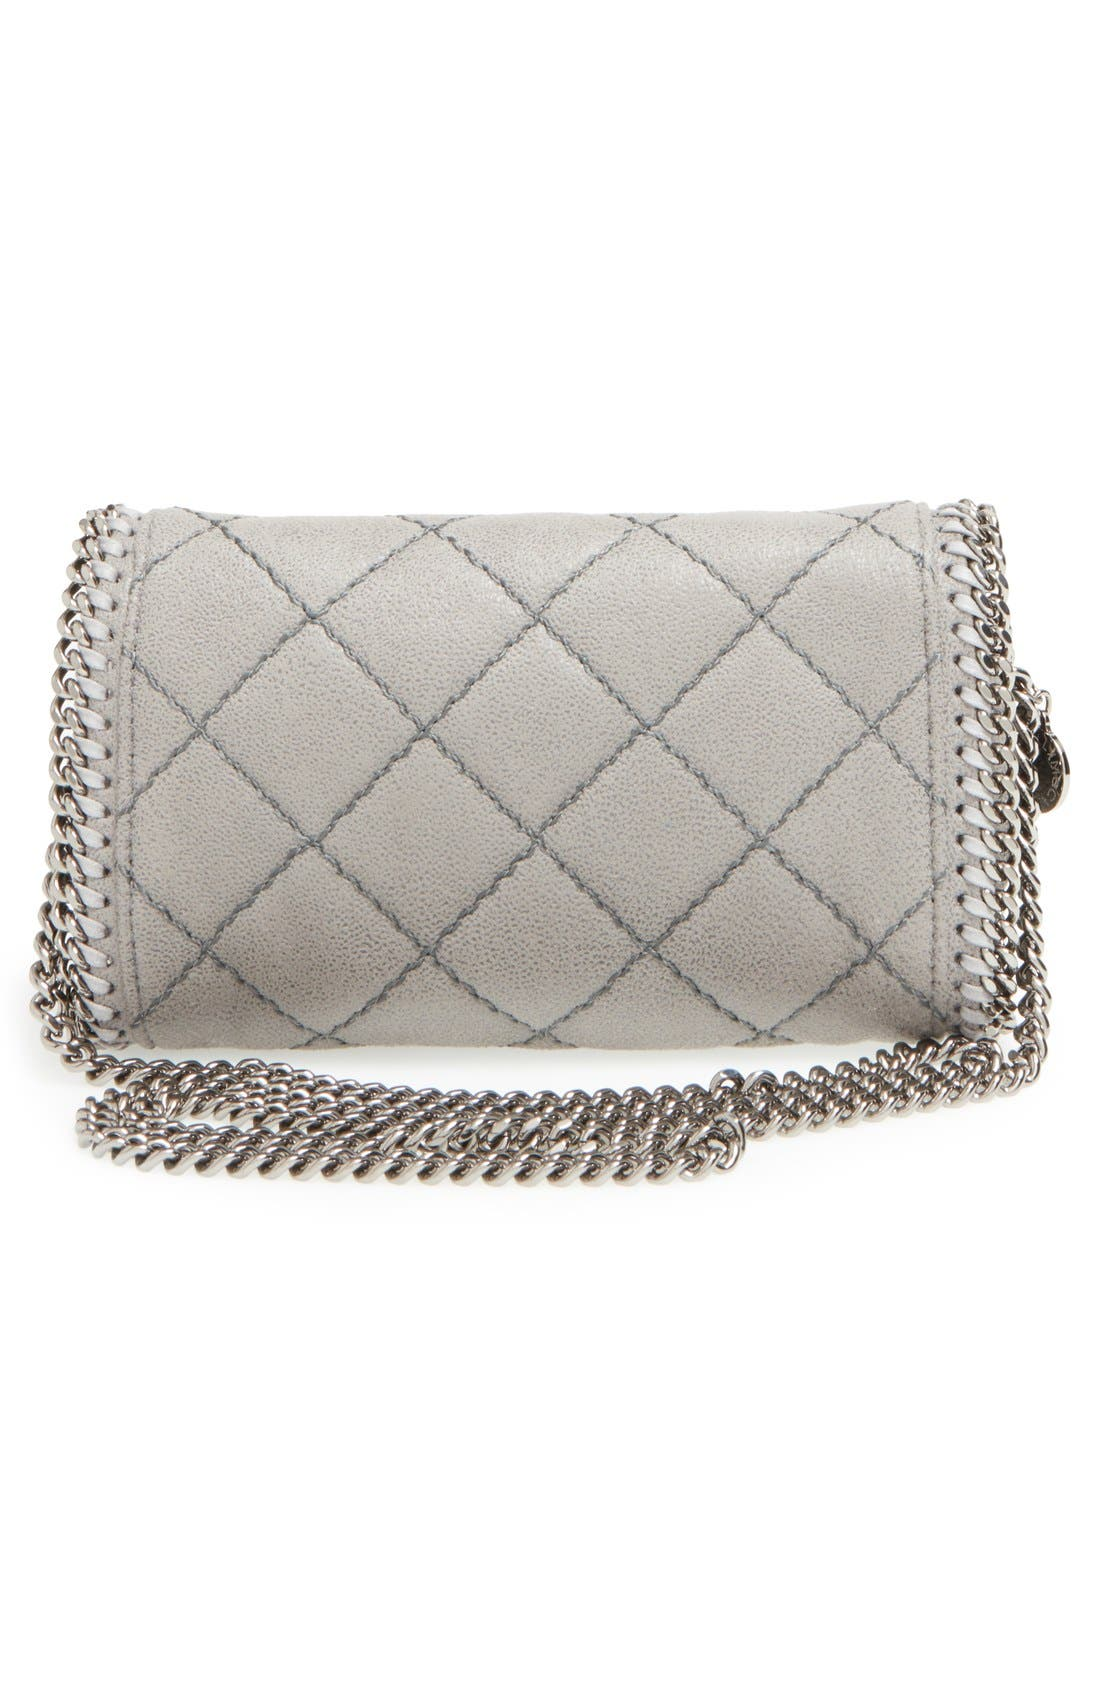 'Falabella' Quilted Faux Leather Crossbody Bag,                             Alternate thumbnail 5, color,